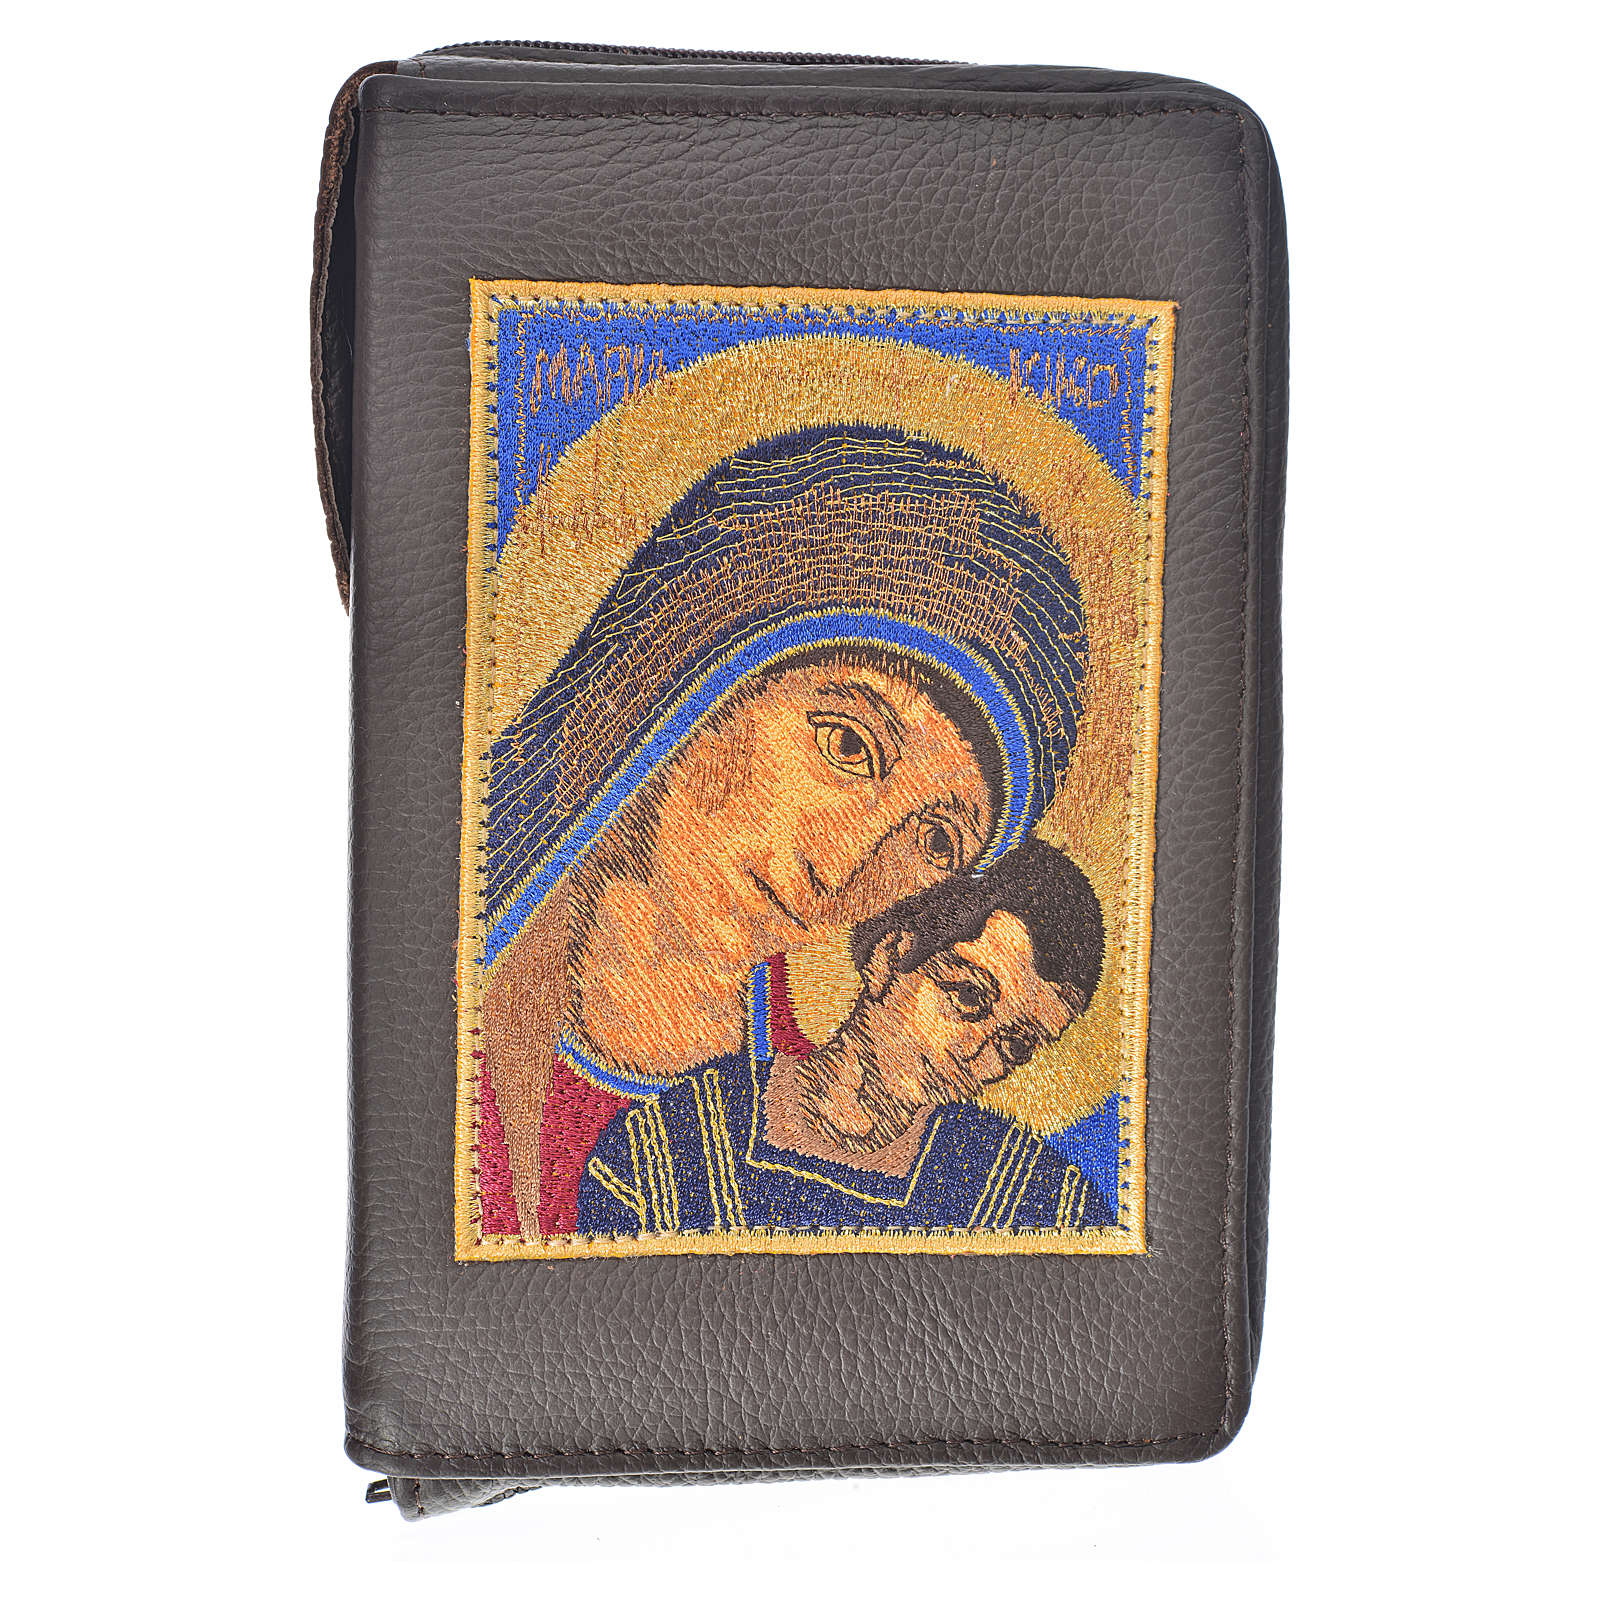 Cover for the New Jerusalem Bible genuine leather Our Lady of Kiko 4